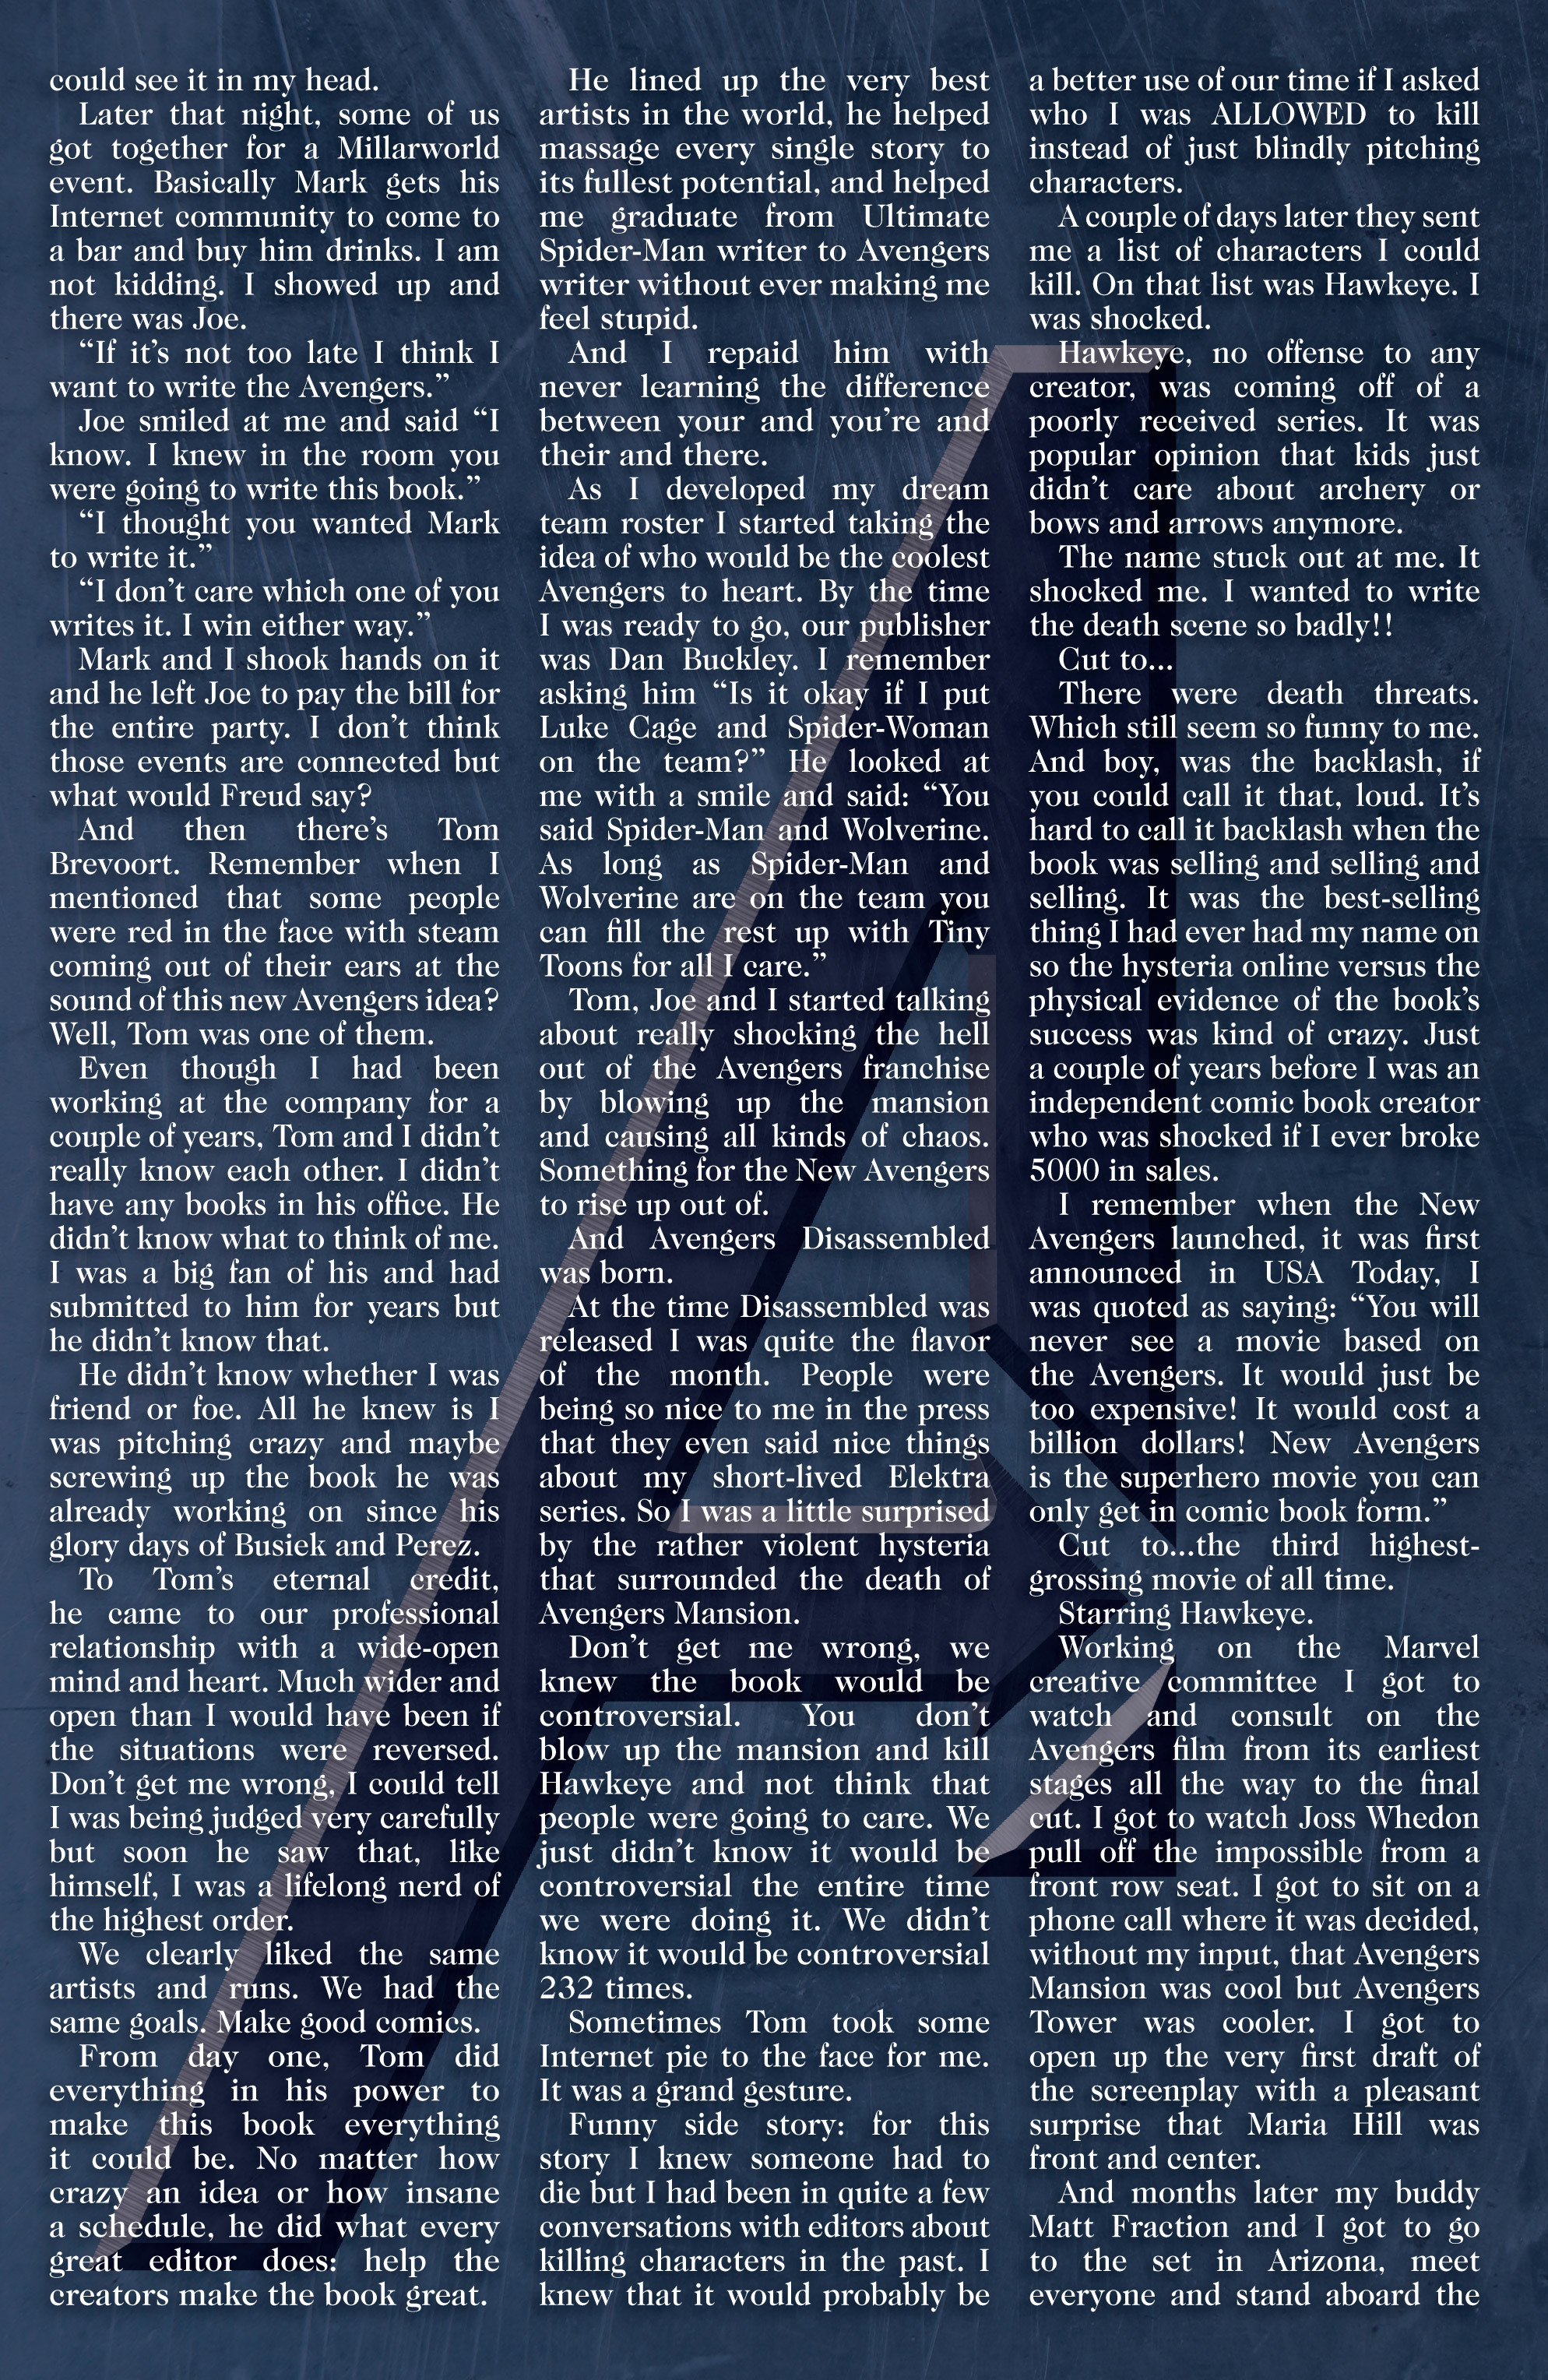 Read online Avengers (2010) comic -  Issue #34 - 32